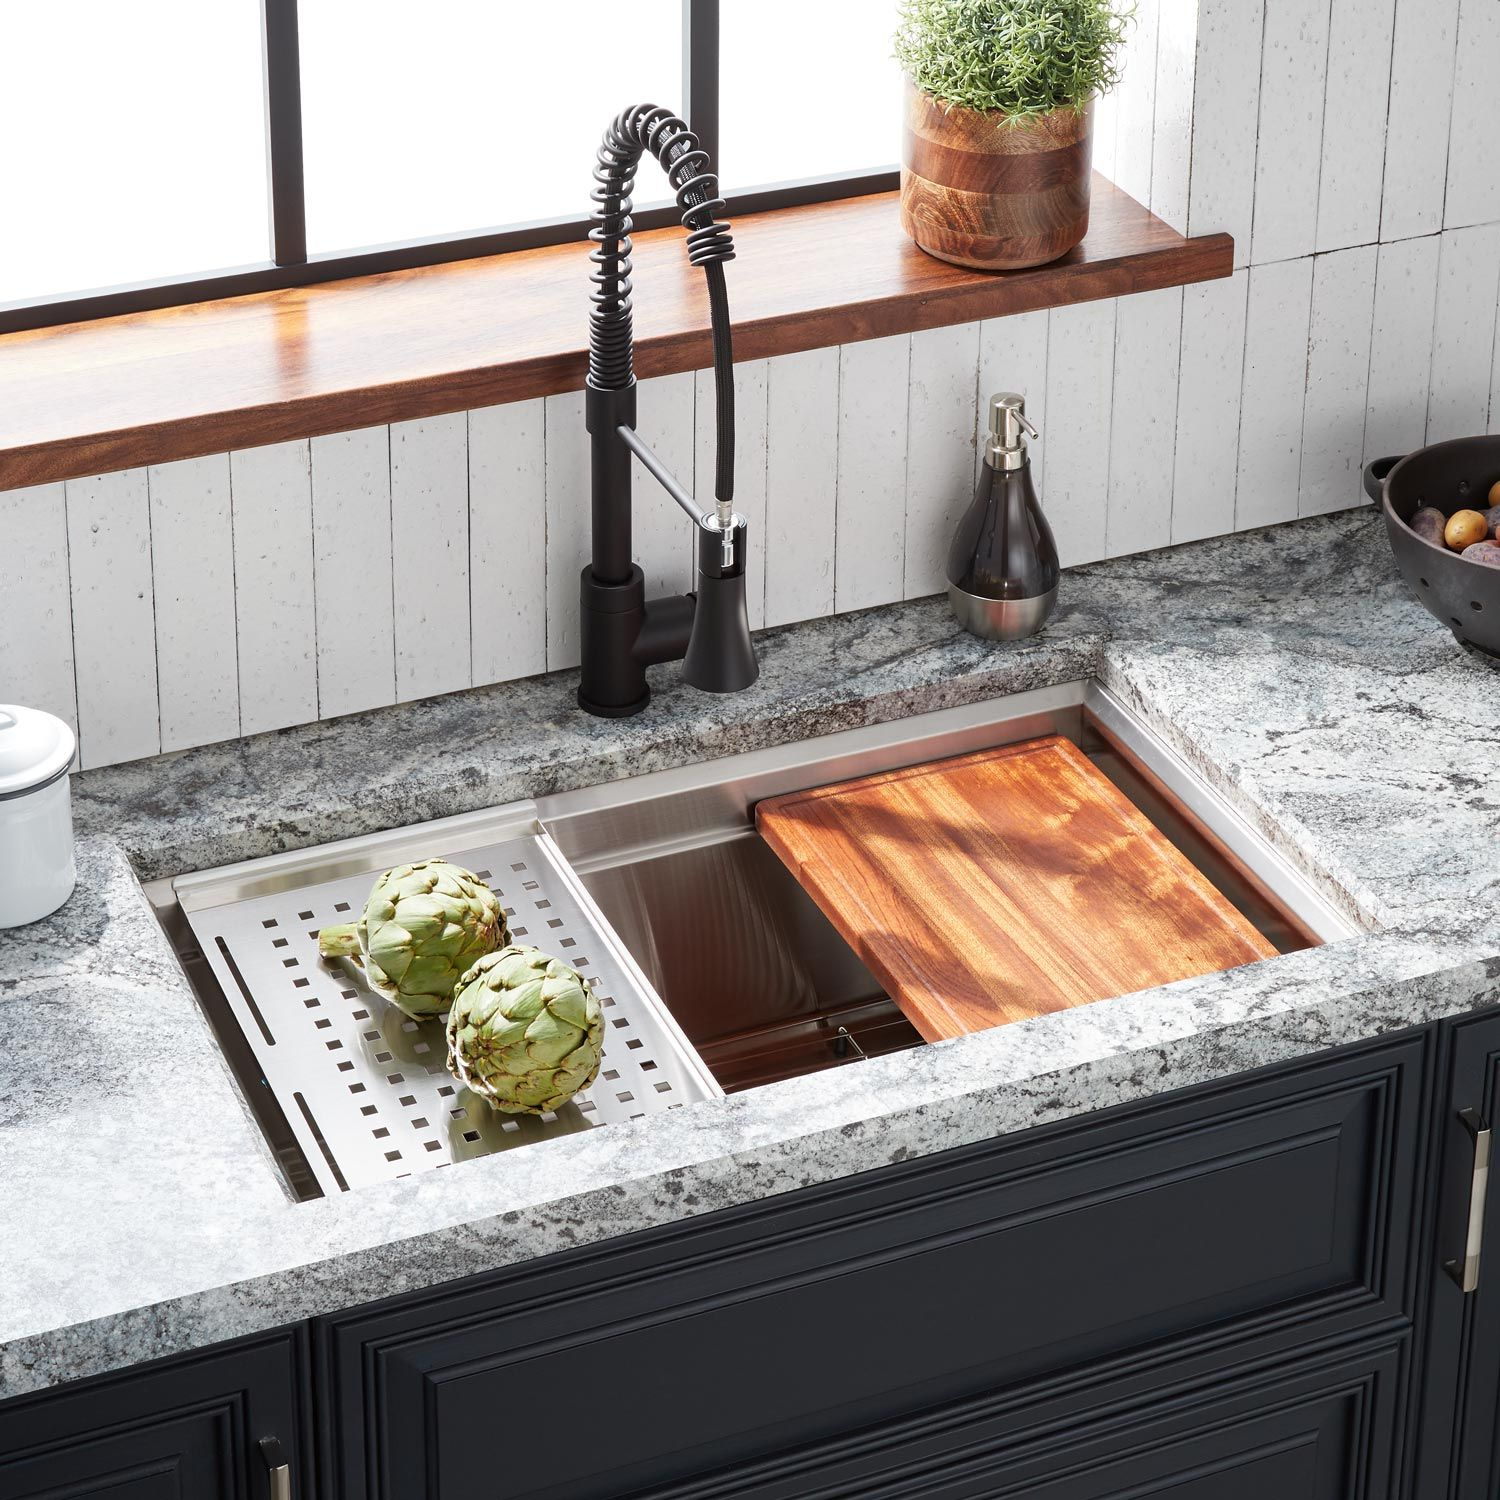 32 Workspace Stainless Steel Farmhouse Sink Stainless Farmhouse Sinks Farmhouse Sinks Kitchen In 2020 Undermount Sink Sink Stainless Steel Farmhouse Sink